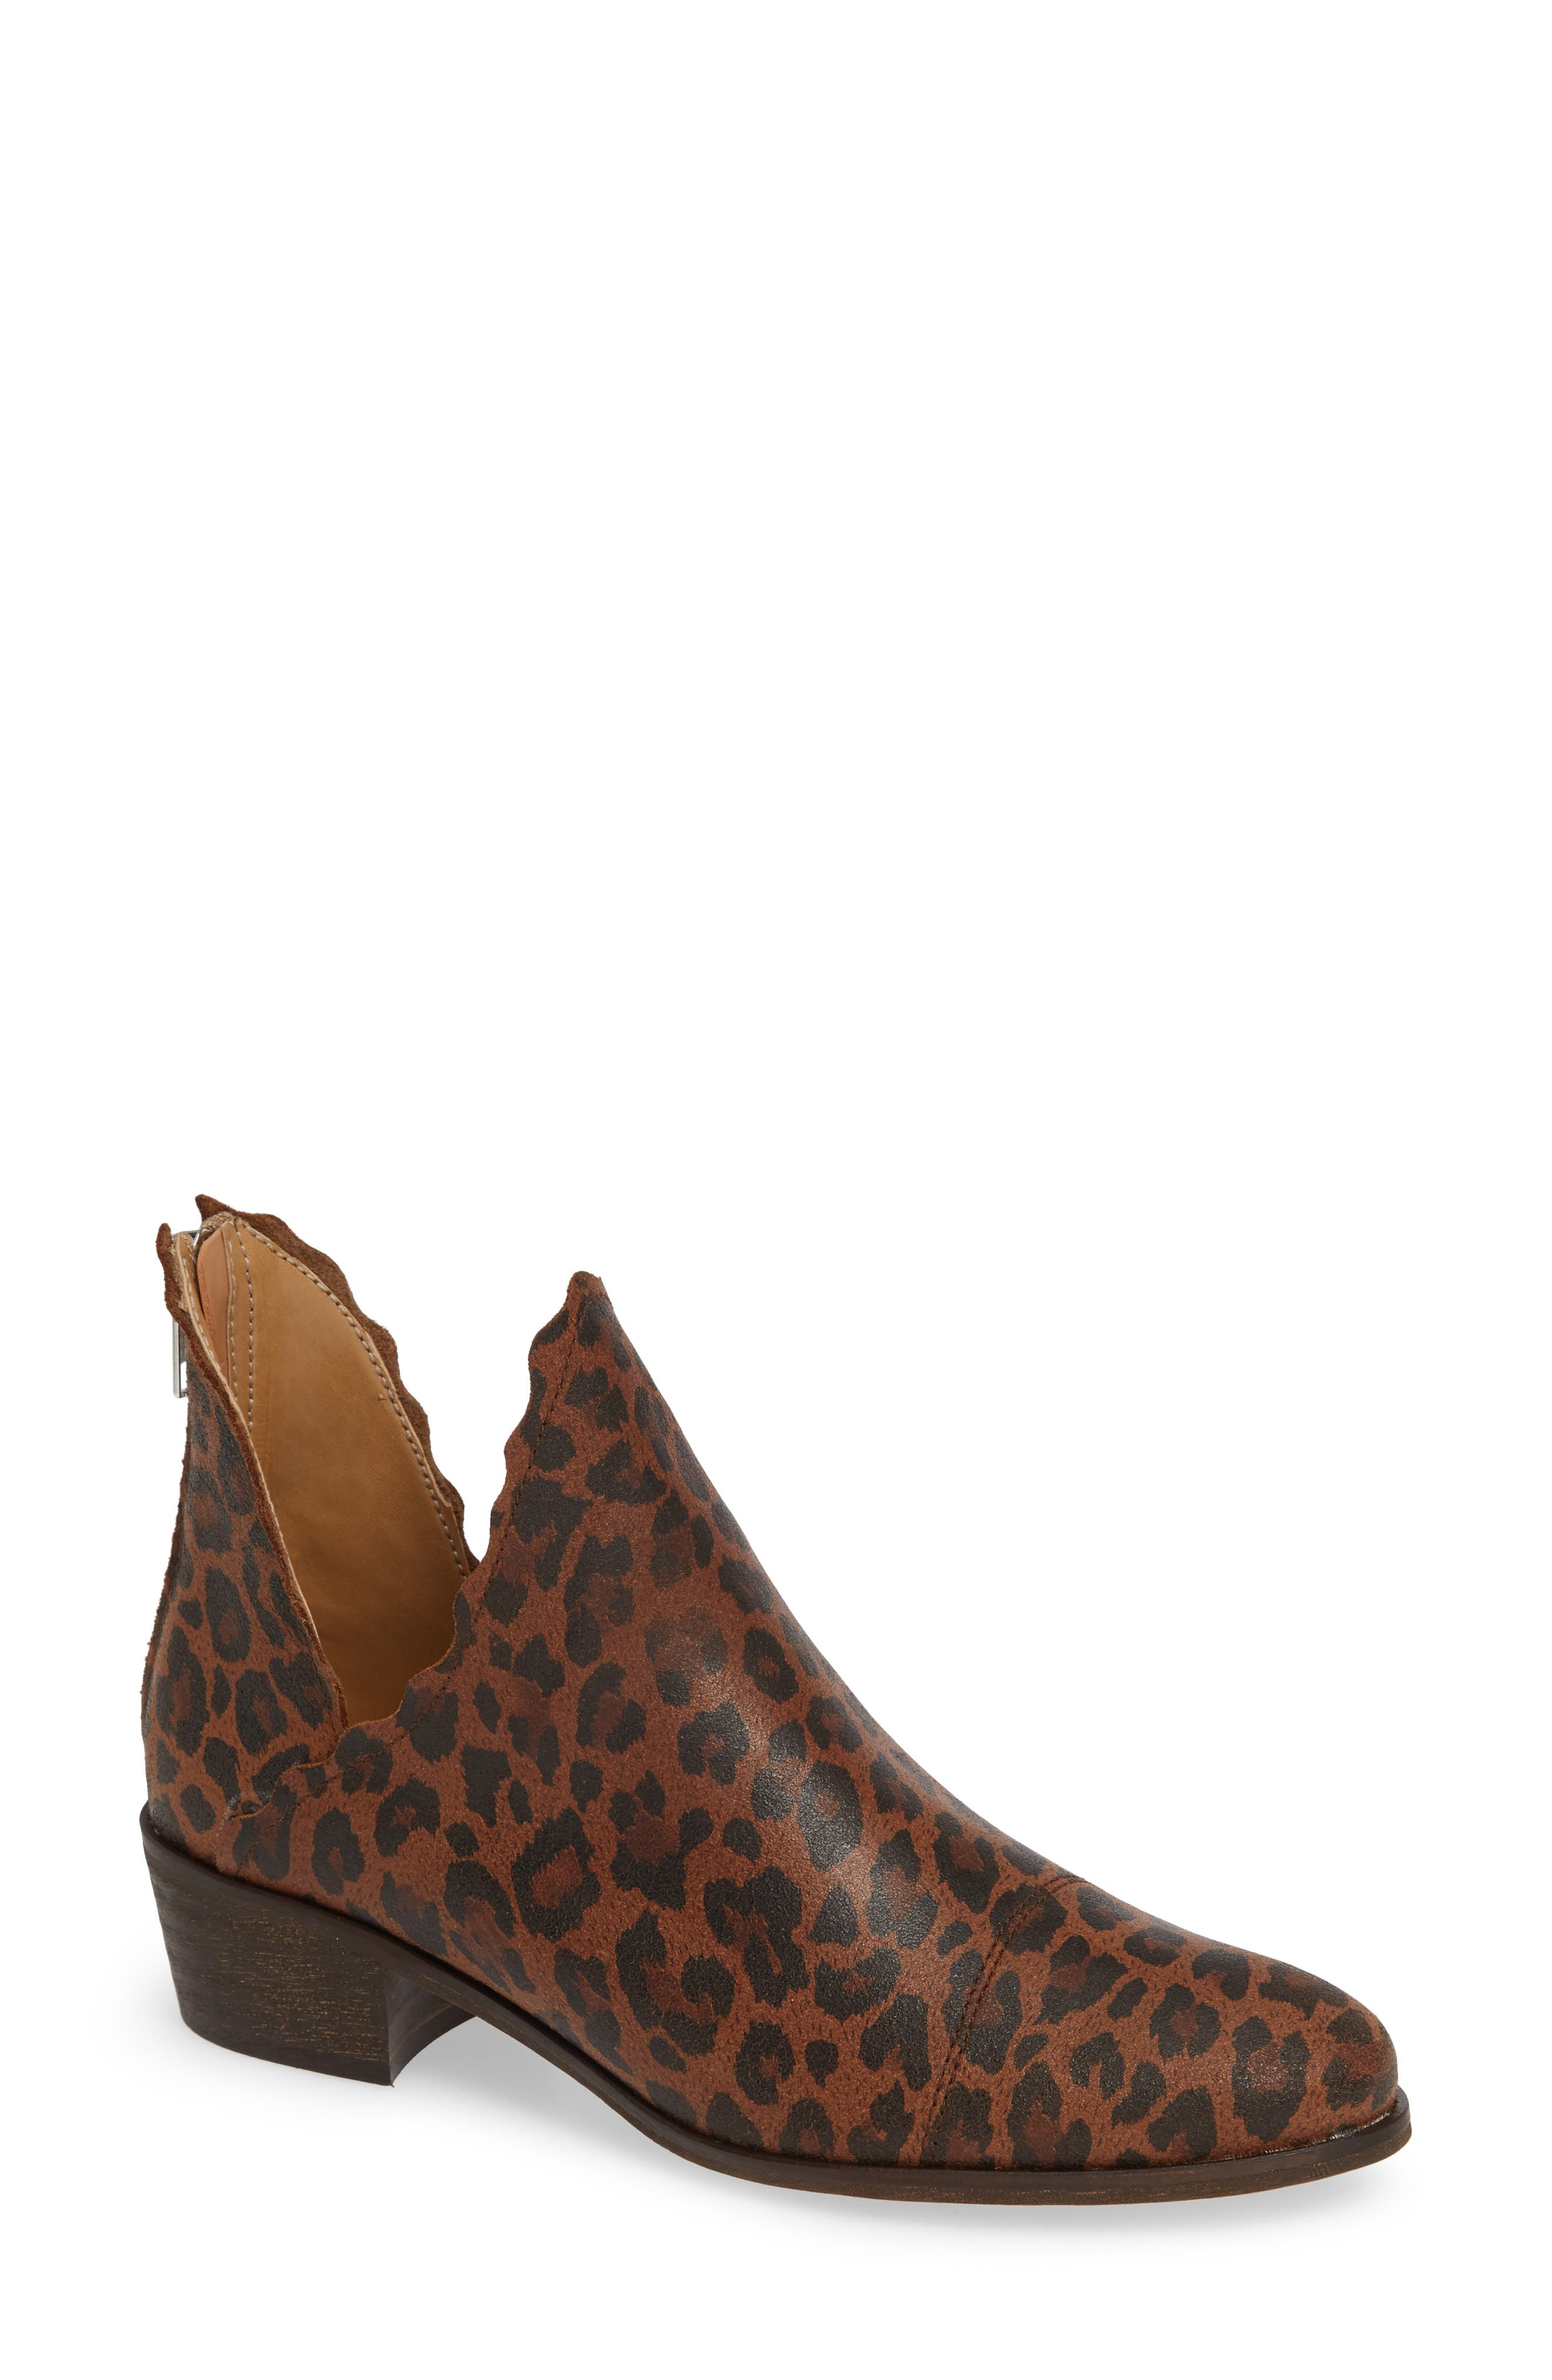 KLUB NICO Bae Scalloped Bootie, Main, color, LEOPARD SUEDE